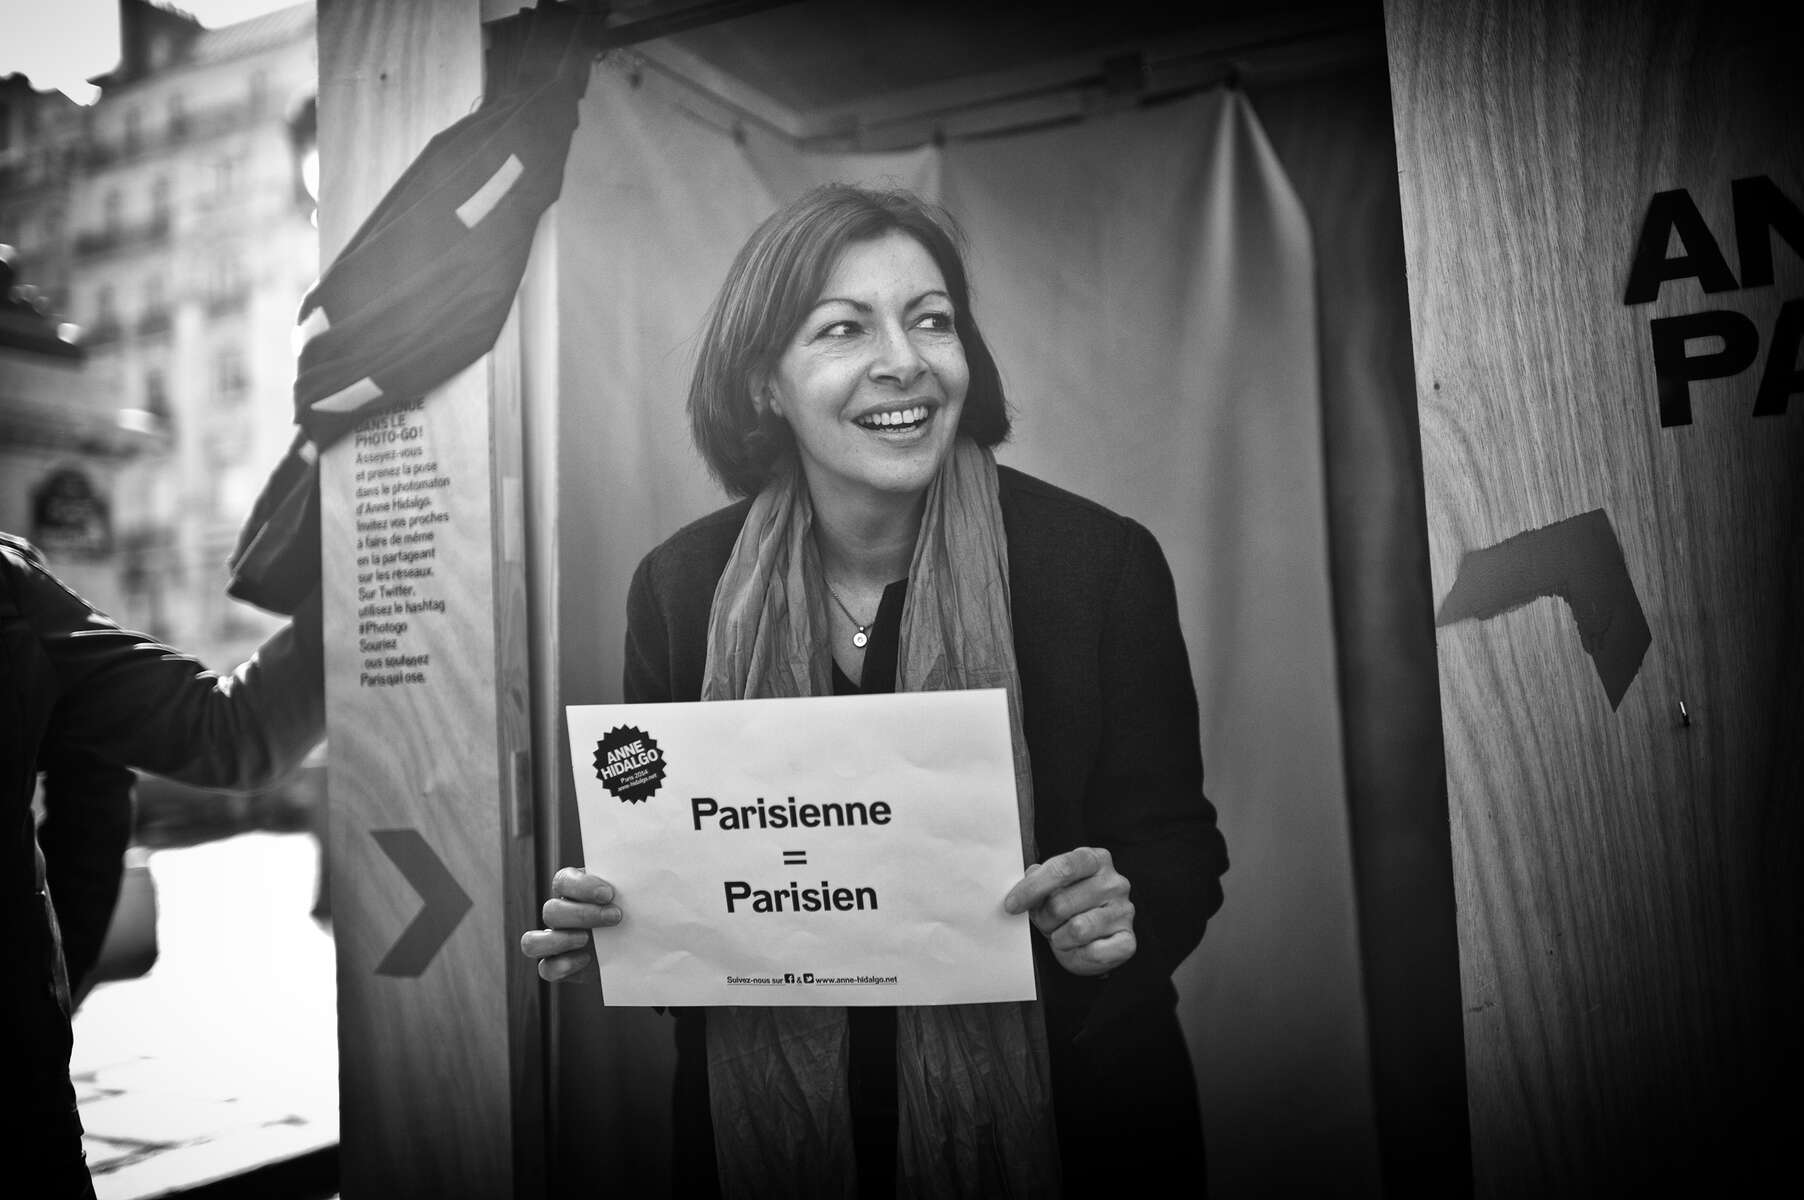 March 08, 2014.  PARIS, FRANCE-  Anne Hidalgo attends an event at Place du Panthéon to celebrate International Women's Day.  For the first time in France's history, Paris will have a woman as a mayor - either Socialist Anne Hidalgo or Center-Right Nathalie Kosciusko-Morizet.  Photo by Scout Tufankjian